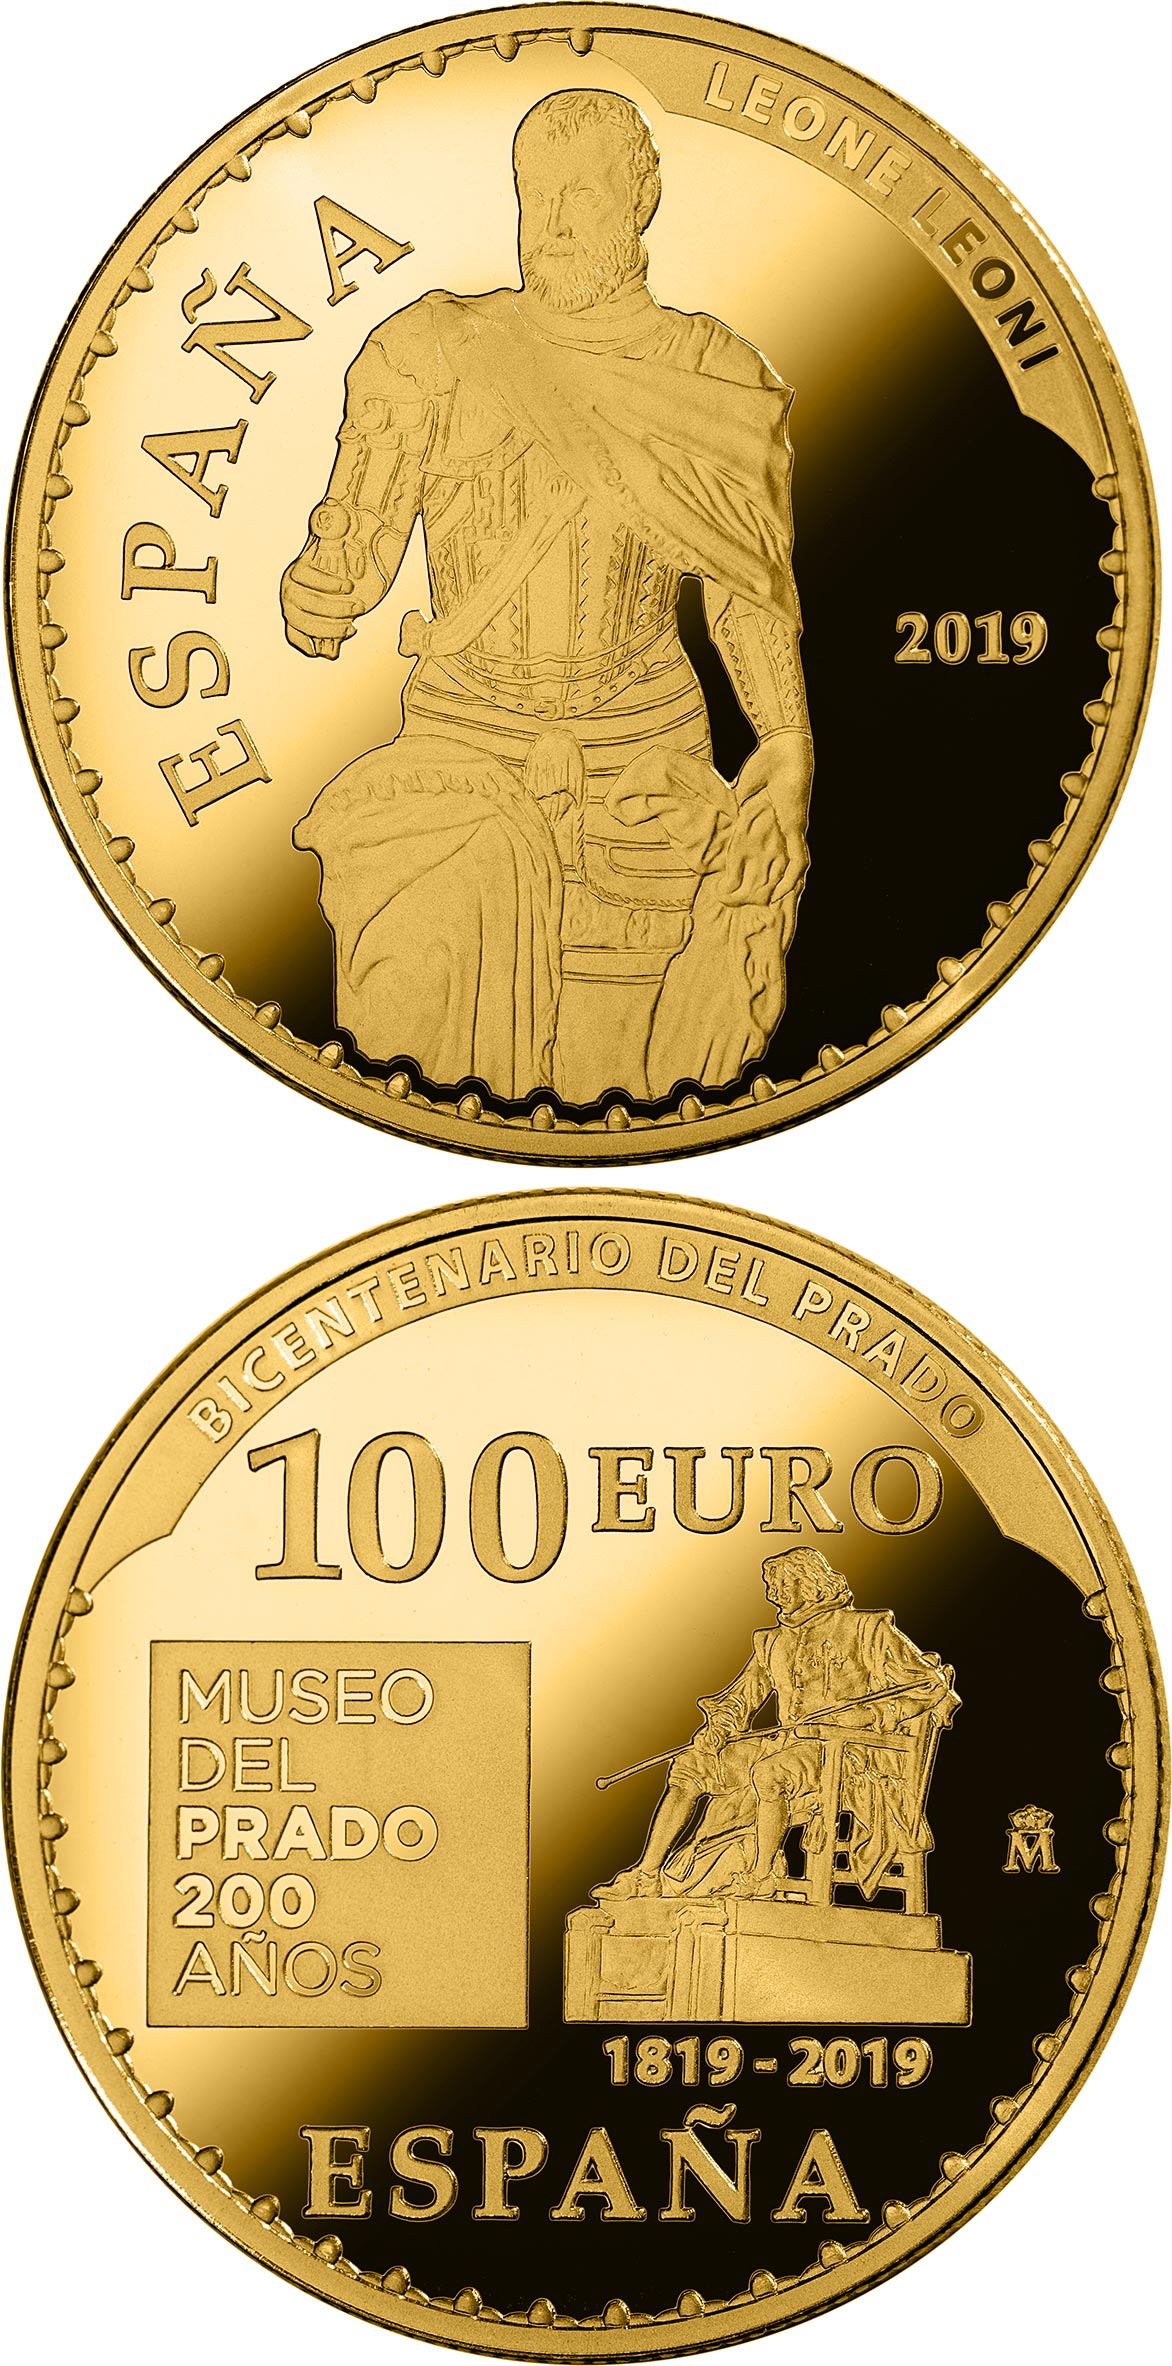 Image of 100 euro coin - Bicentenary of the Museum del Prado - Carlos V | Spain 2019.  The Gold coin is of Proof quality.